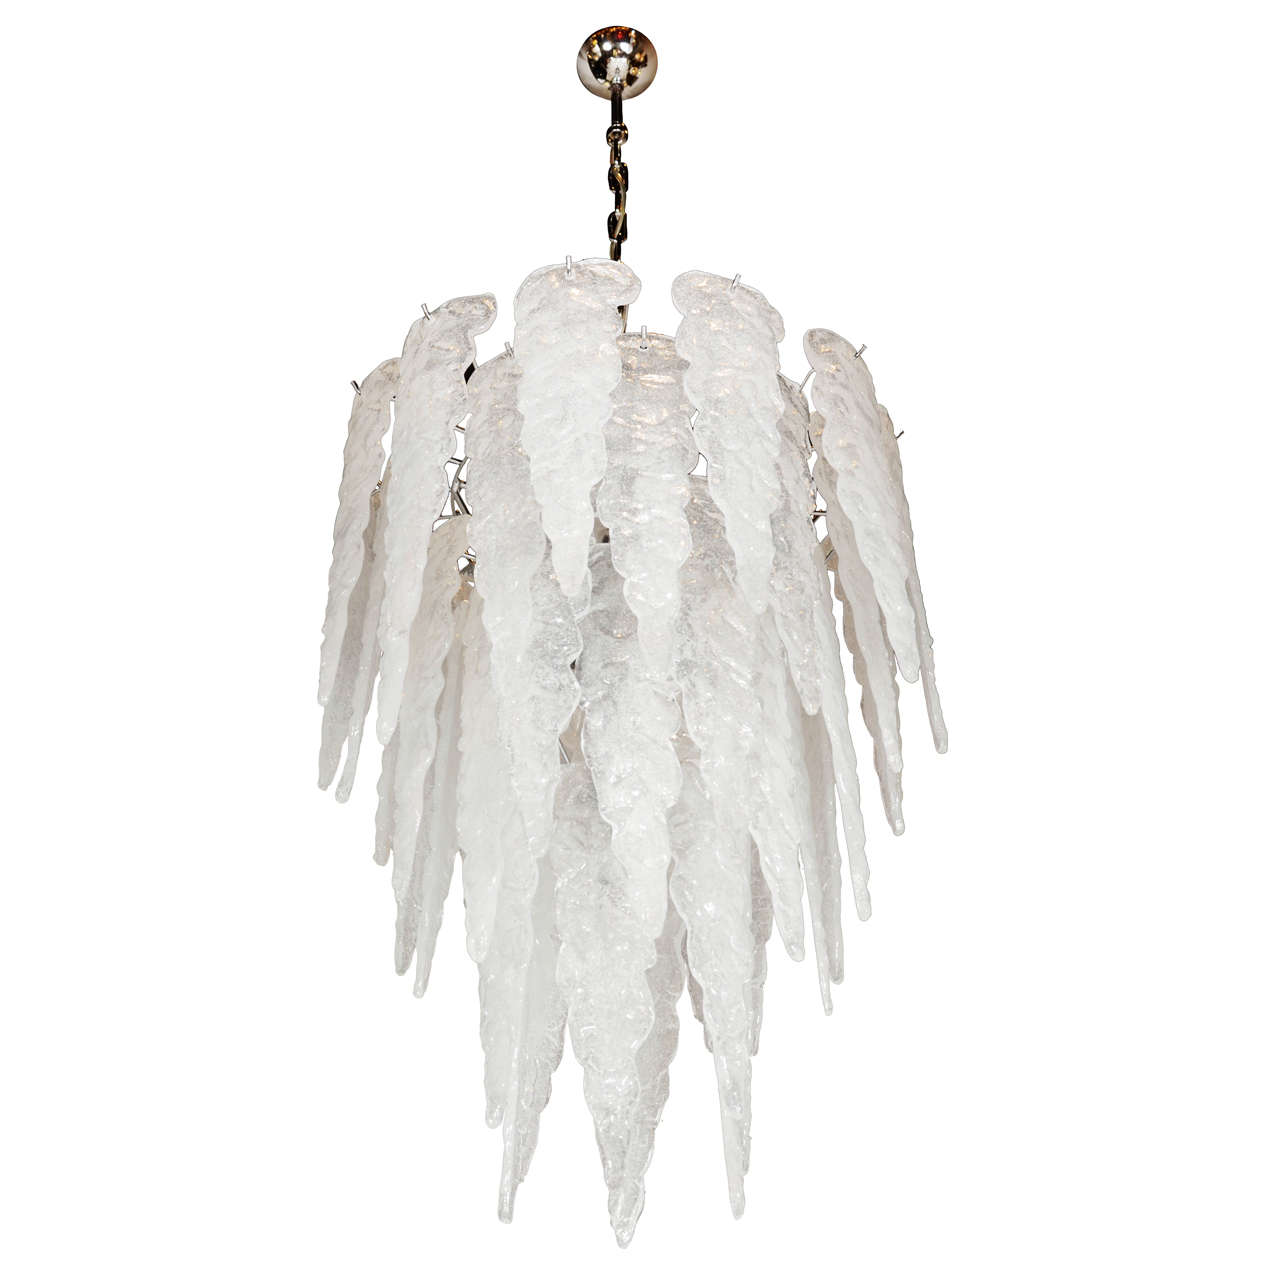 Sculptural hand blown murano glass icicle chandelier by salviati at sculptural hand blown murano glass icicle chandelier by salviati for sale aloadofball Gallery